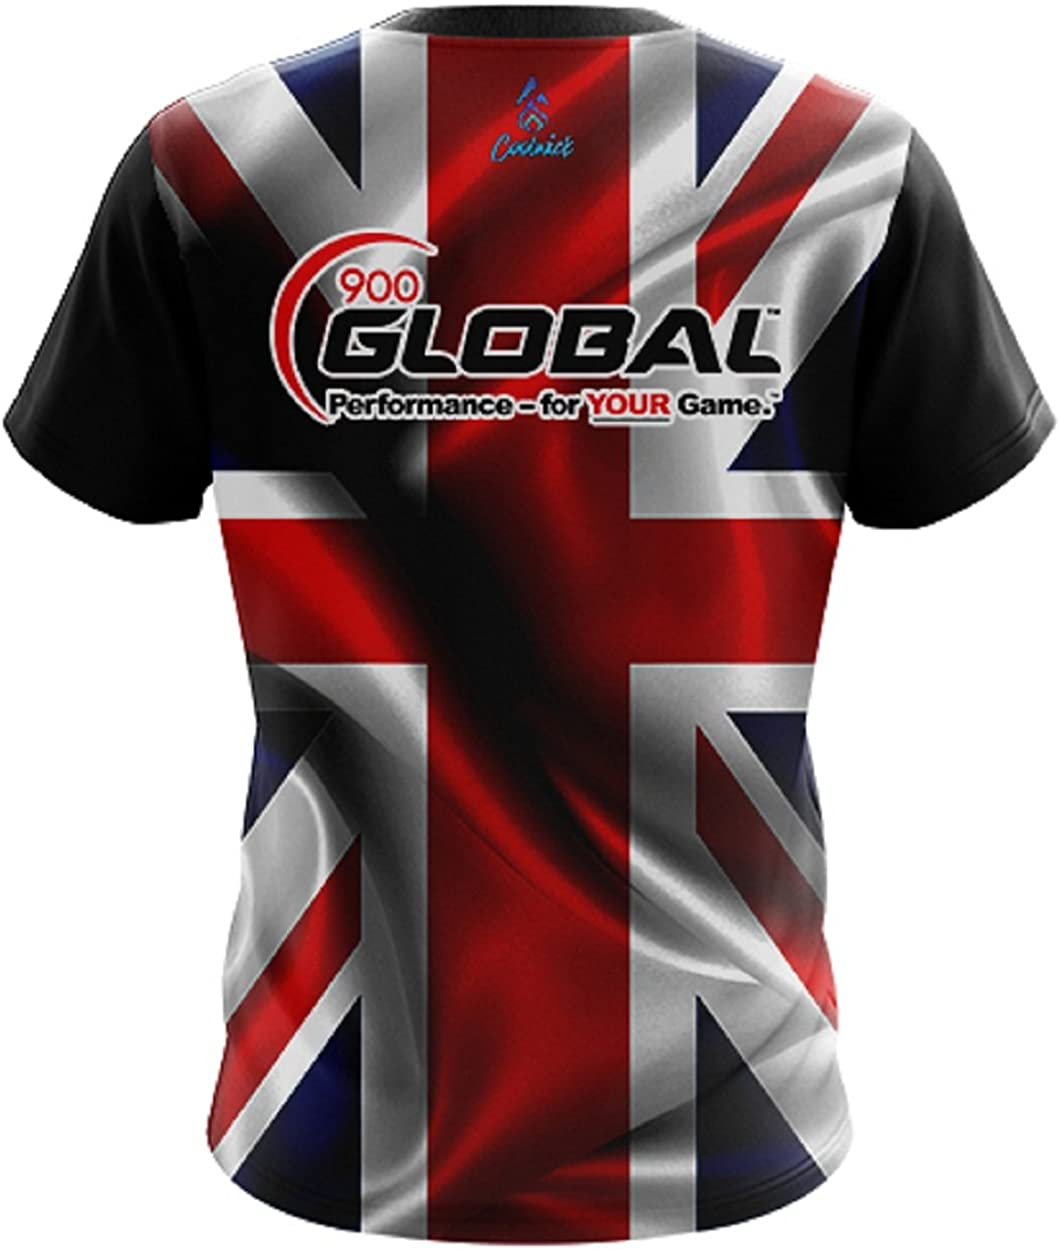 CoolWick 900 Global Mens British Flag Bowling Jersey